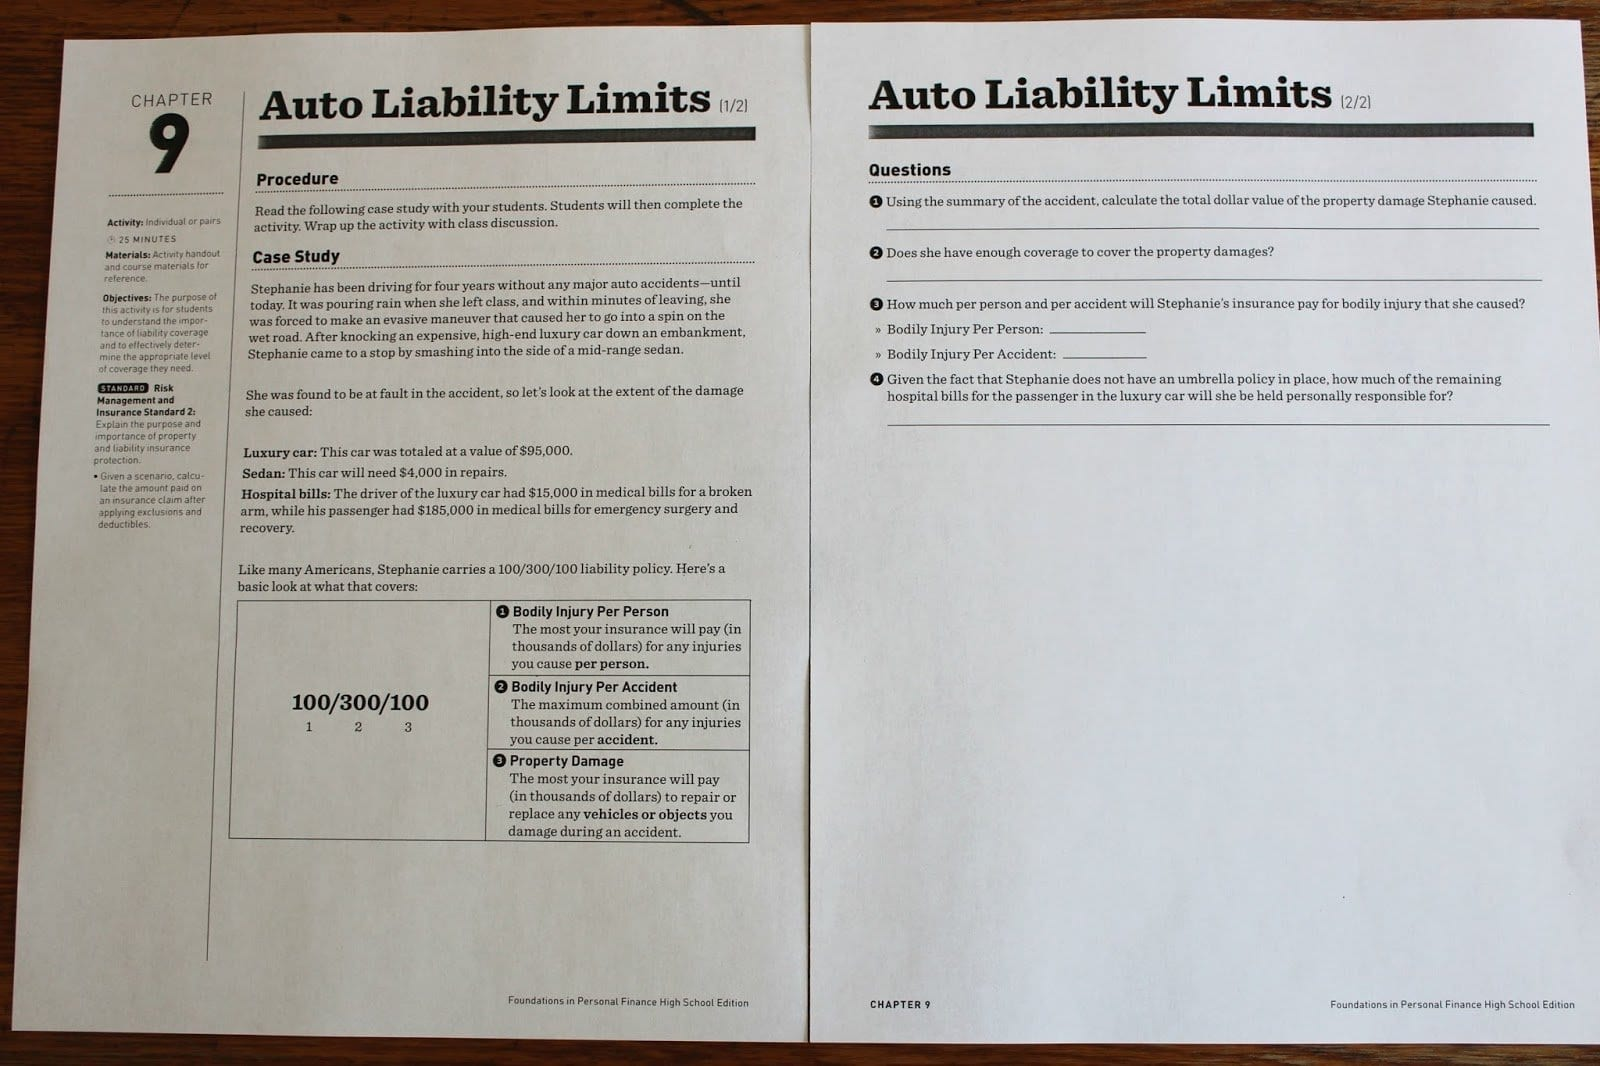 Auto Liability Limits Worksheet Answers Chapter 9